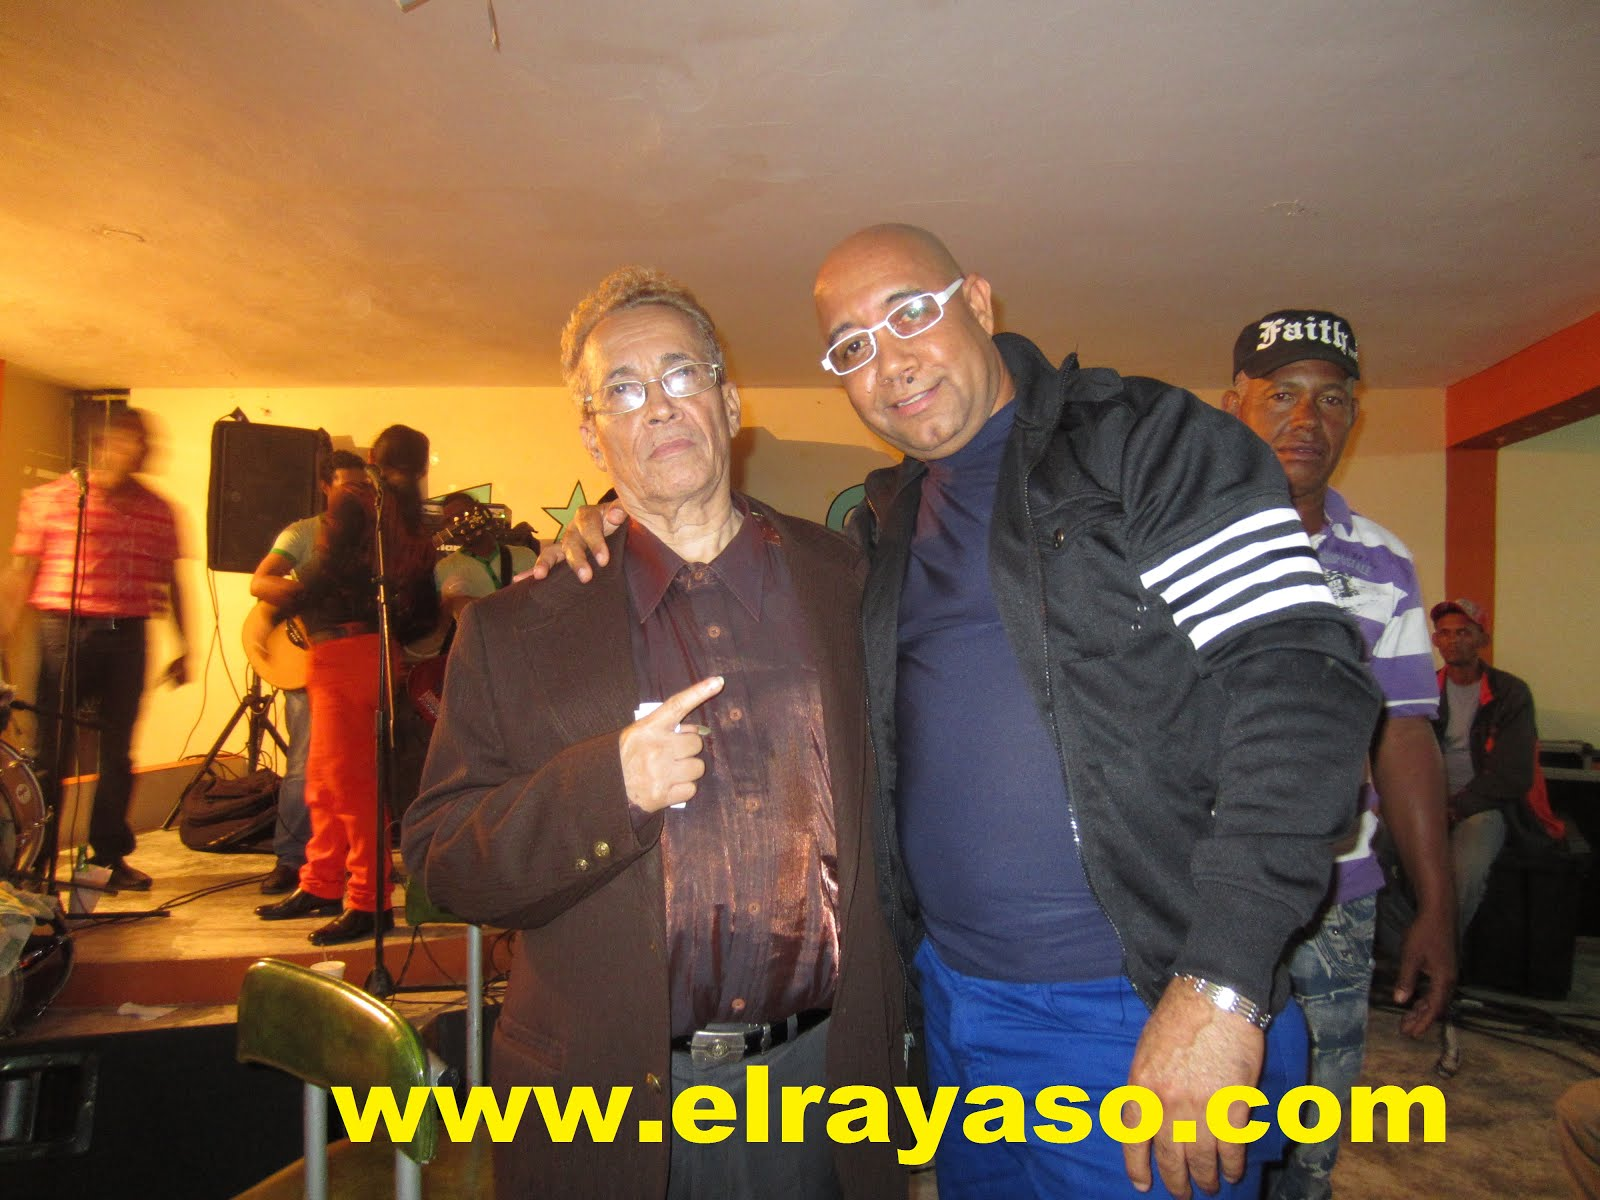 BOLIVAR PERALTA Y ANTHONY